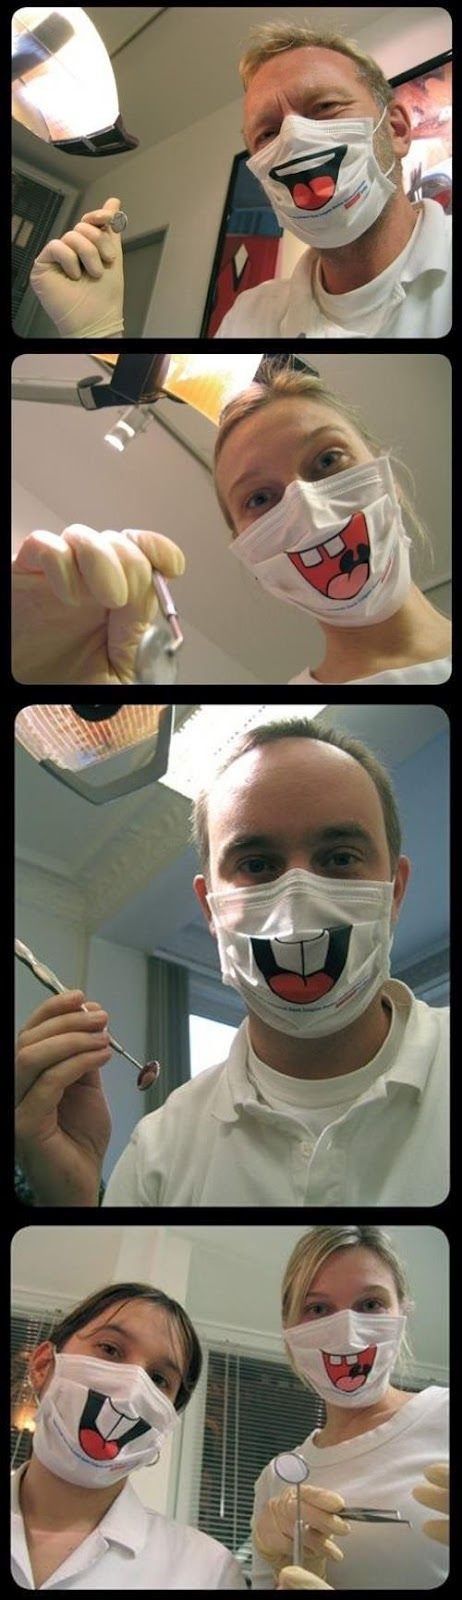 Laughing Chakra: Just Some Weird Dentists